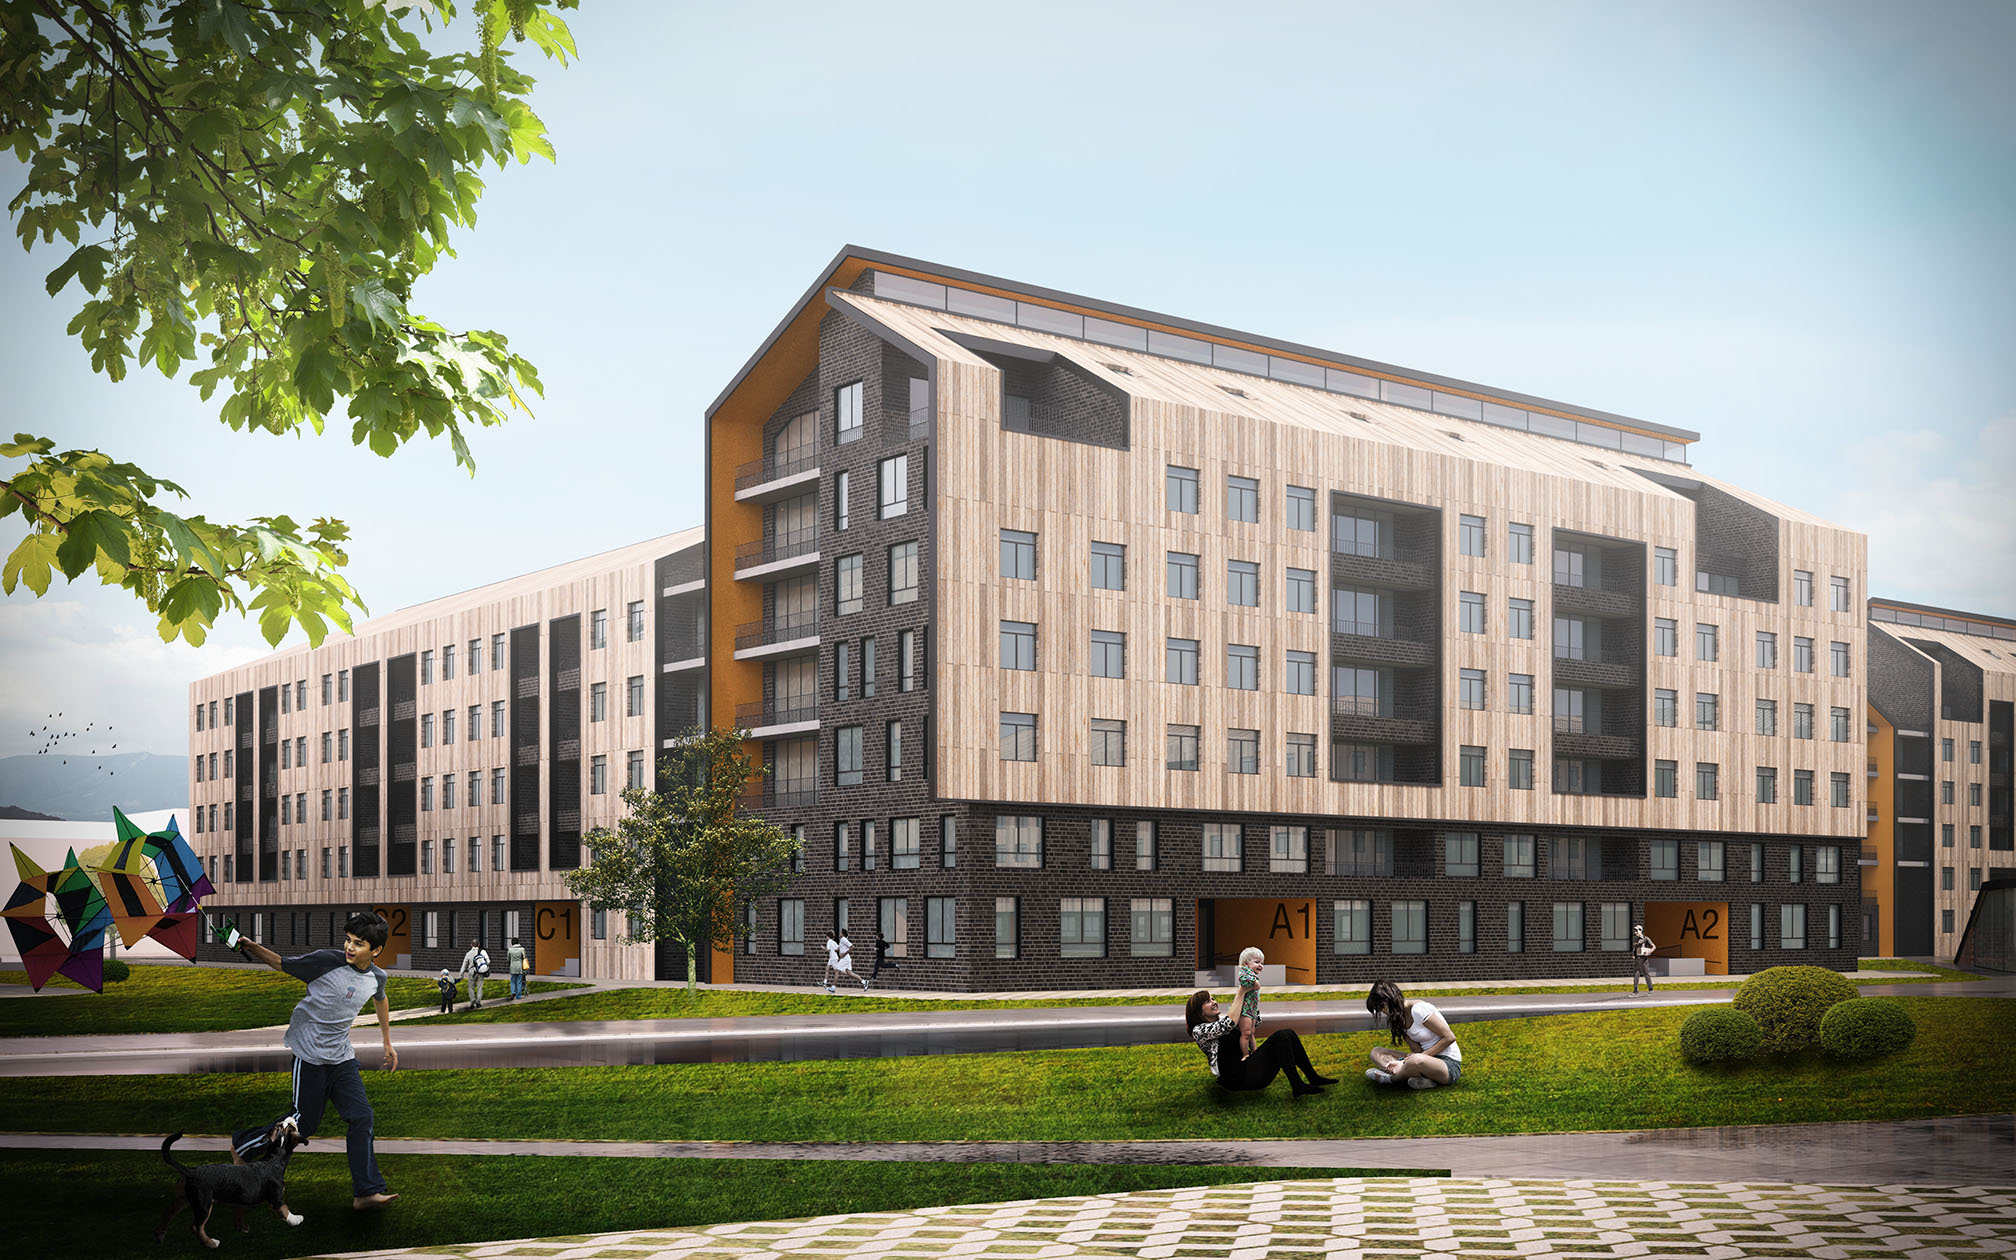 Sakarya Erenler Housing and Social C